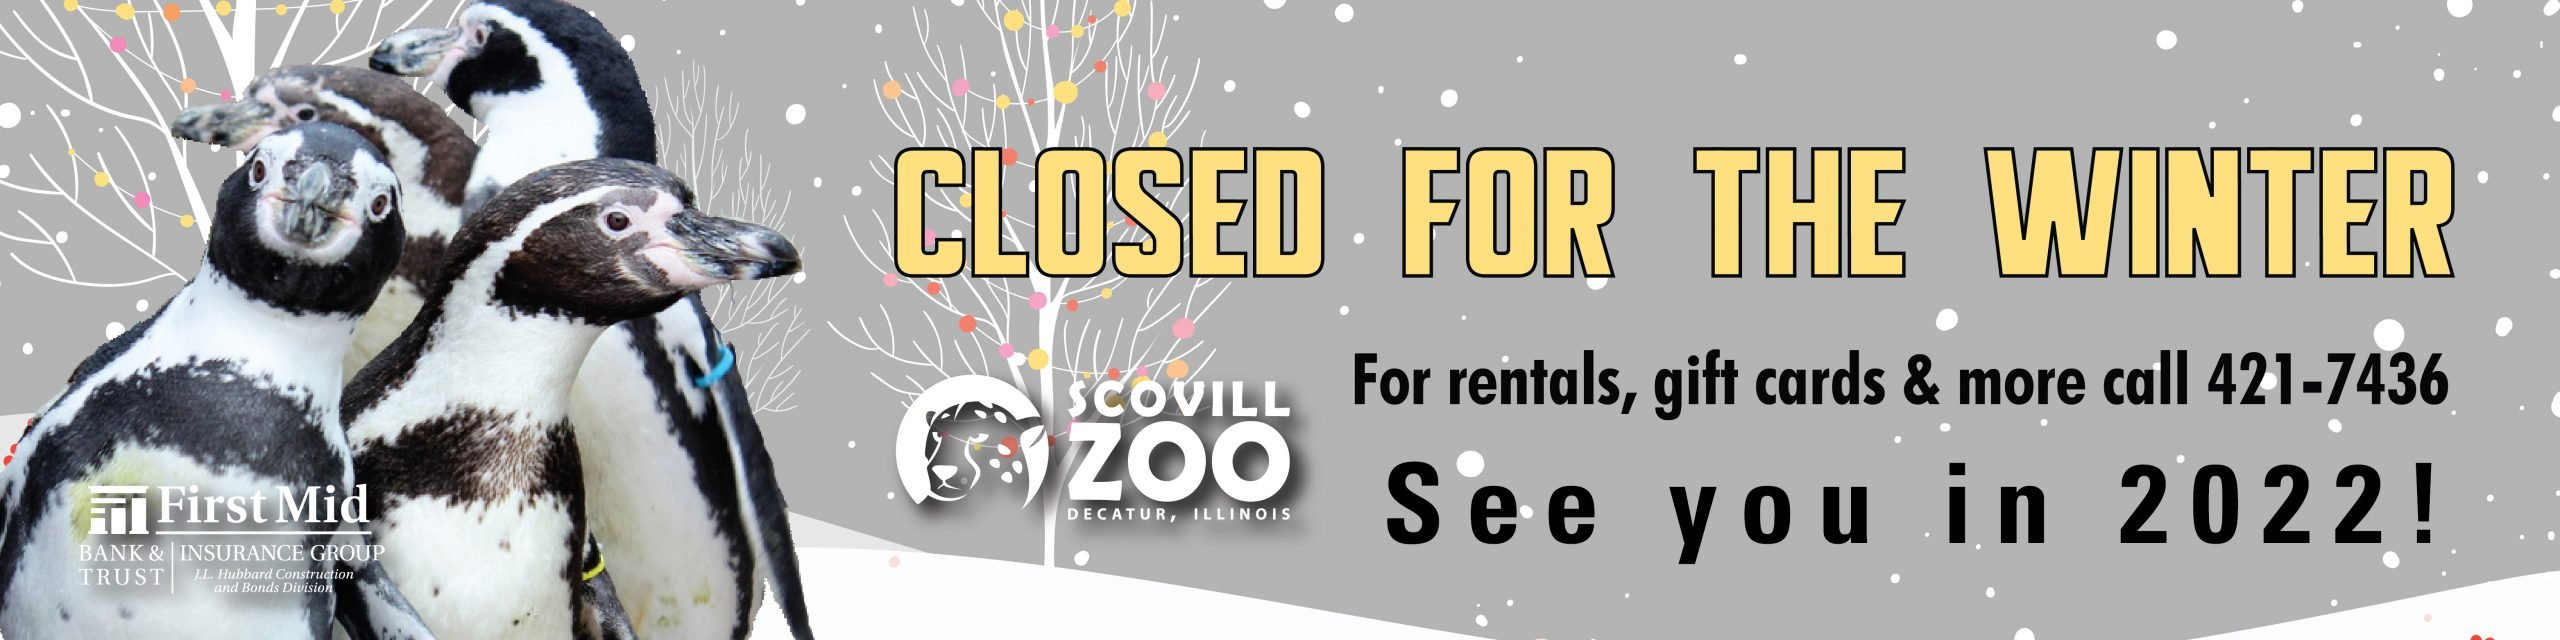 ZooClosed_Web-Banner_2022-01